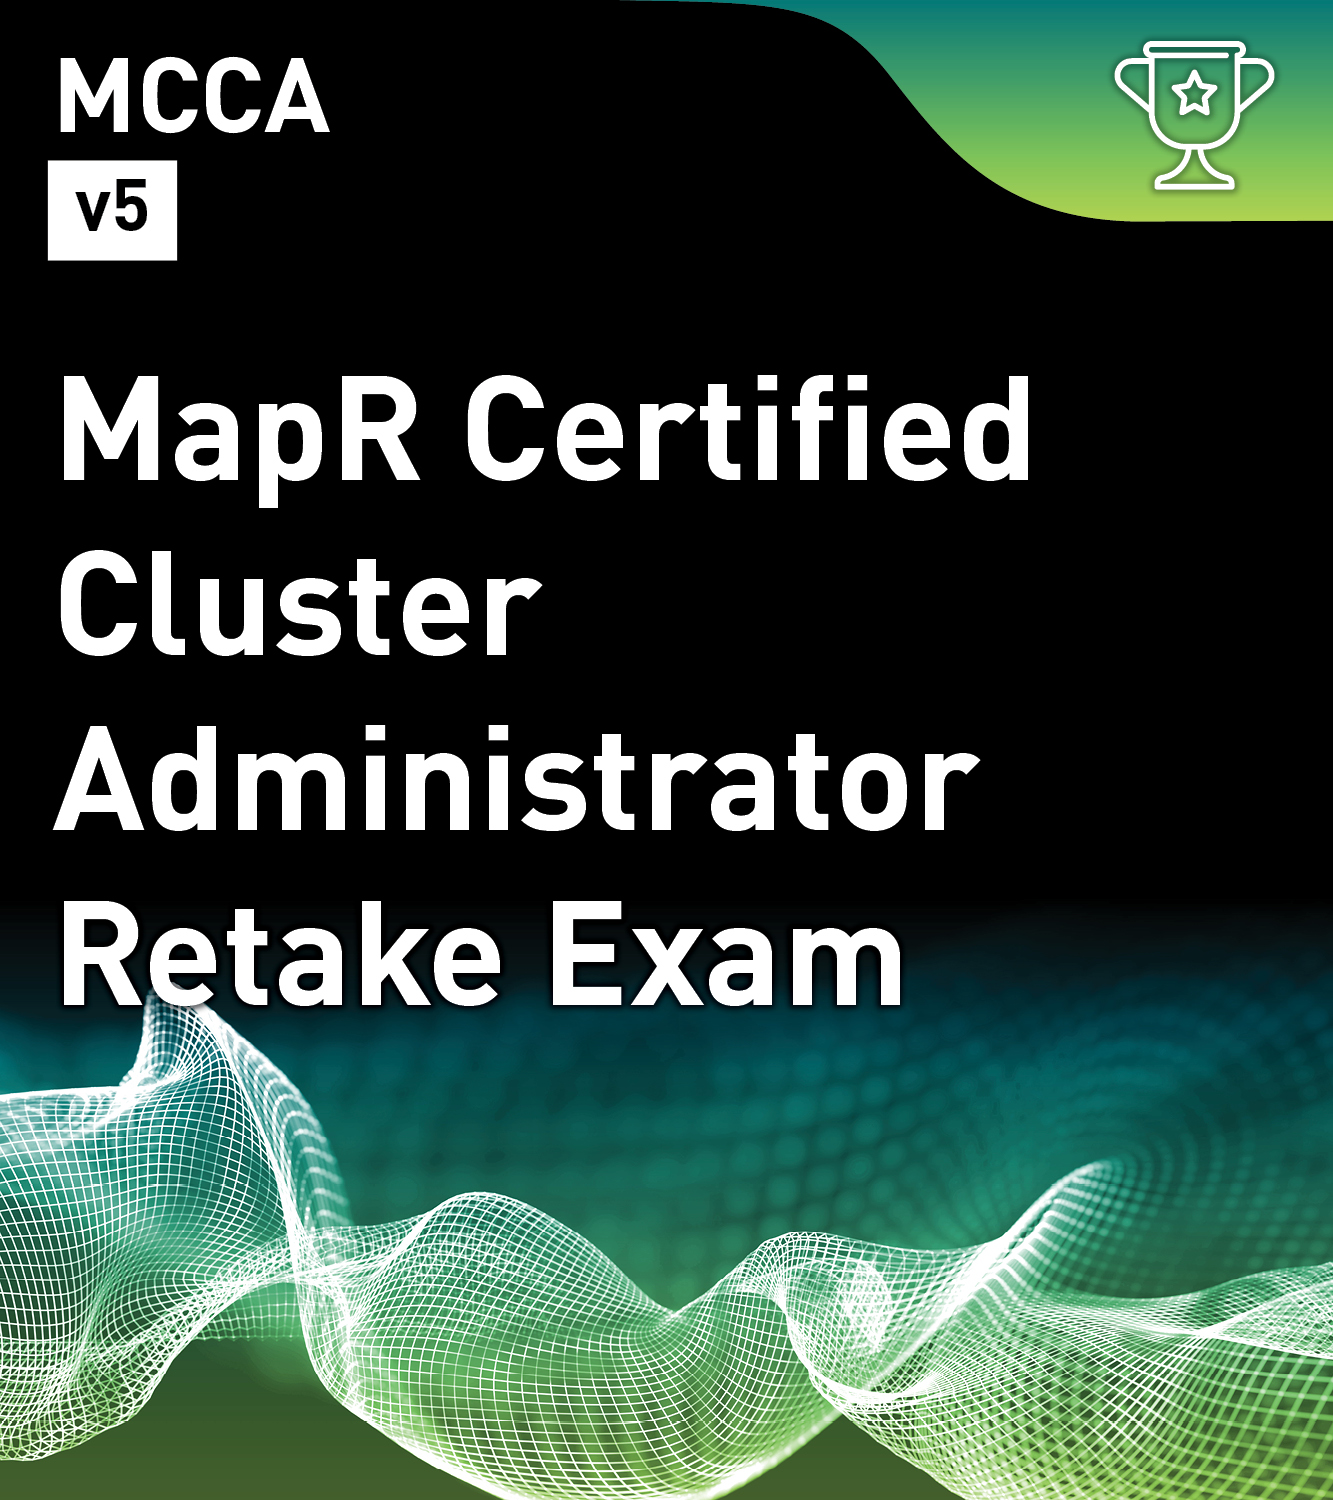 MapR Certified Cluster Administrator 5.1 (MCCA) Exam